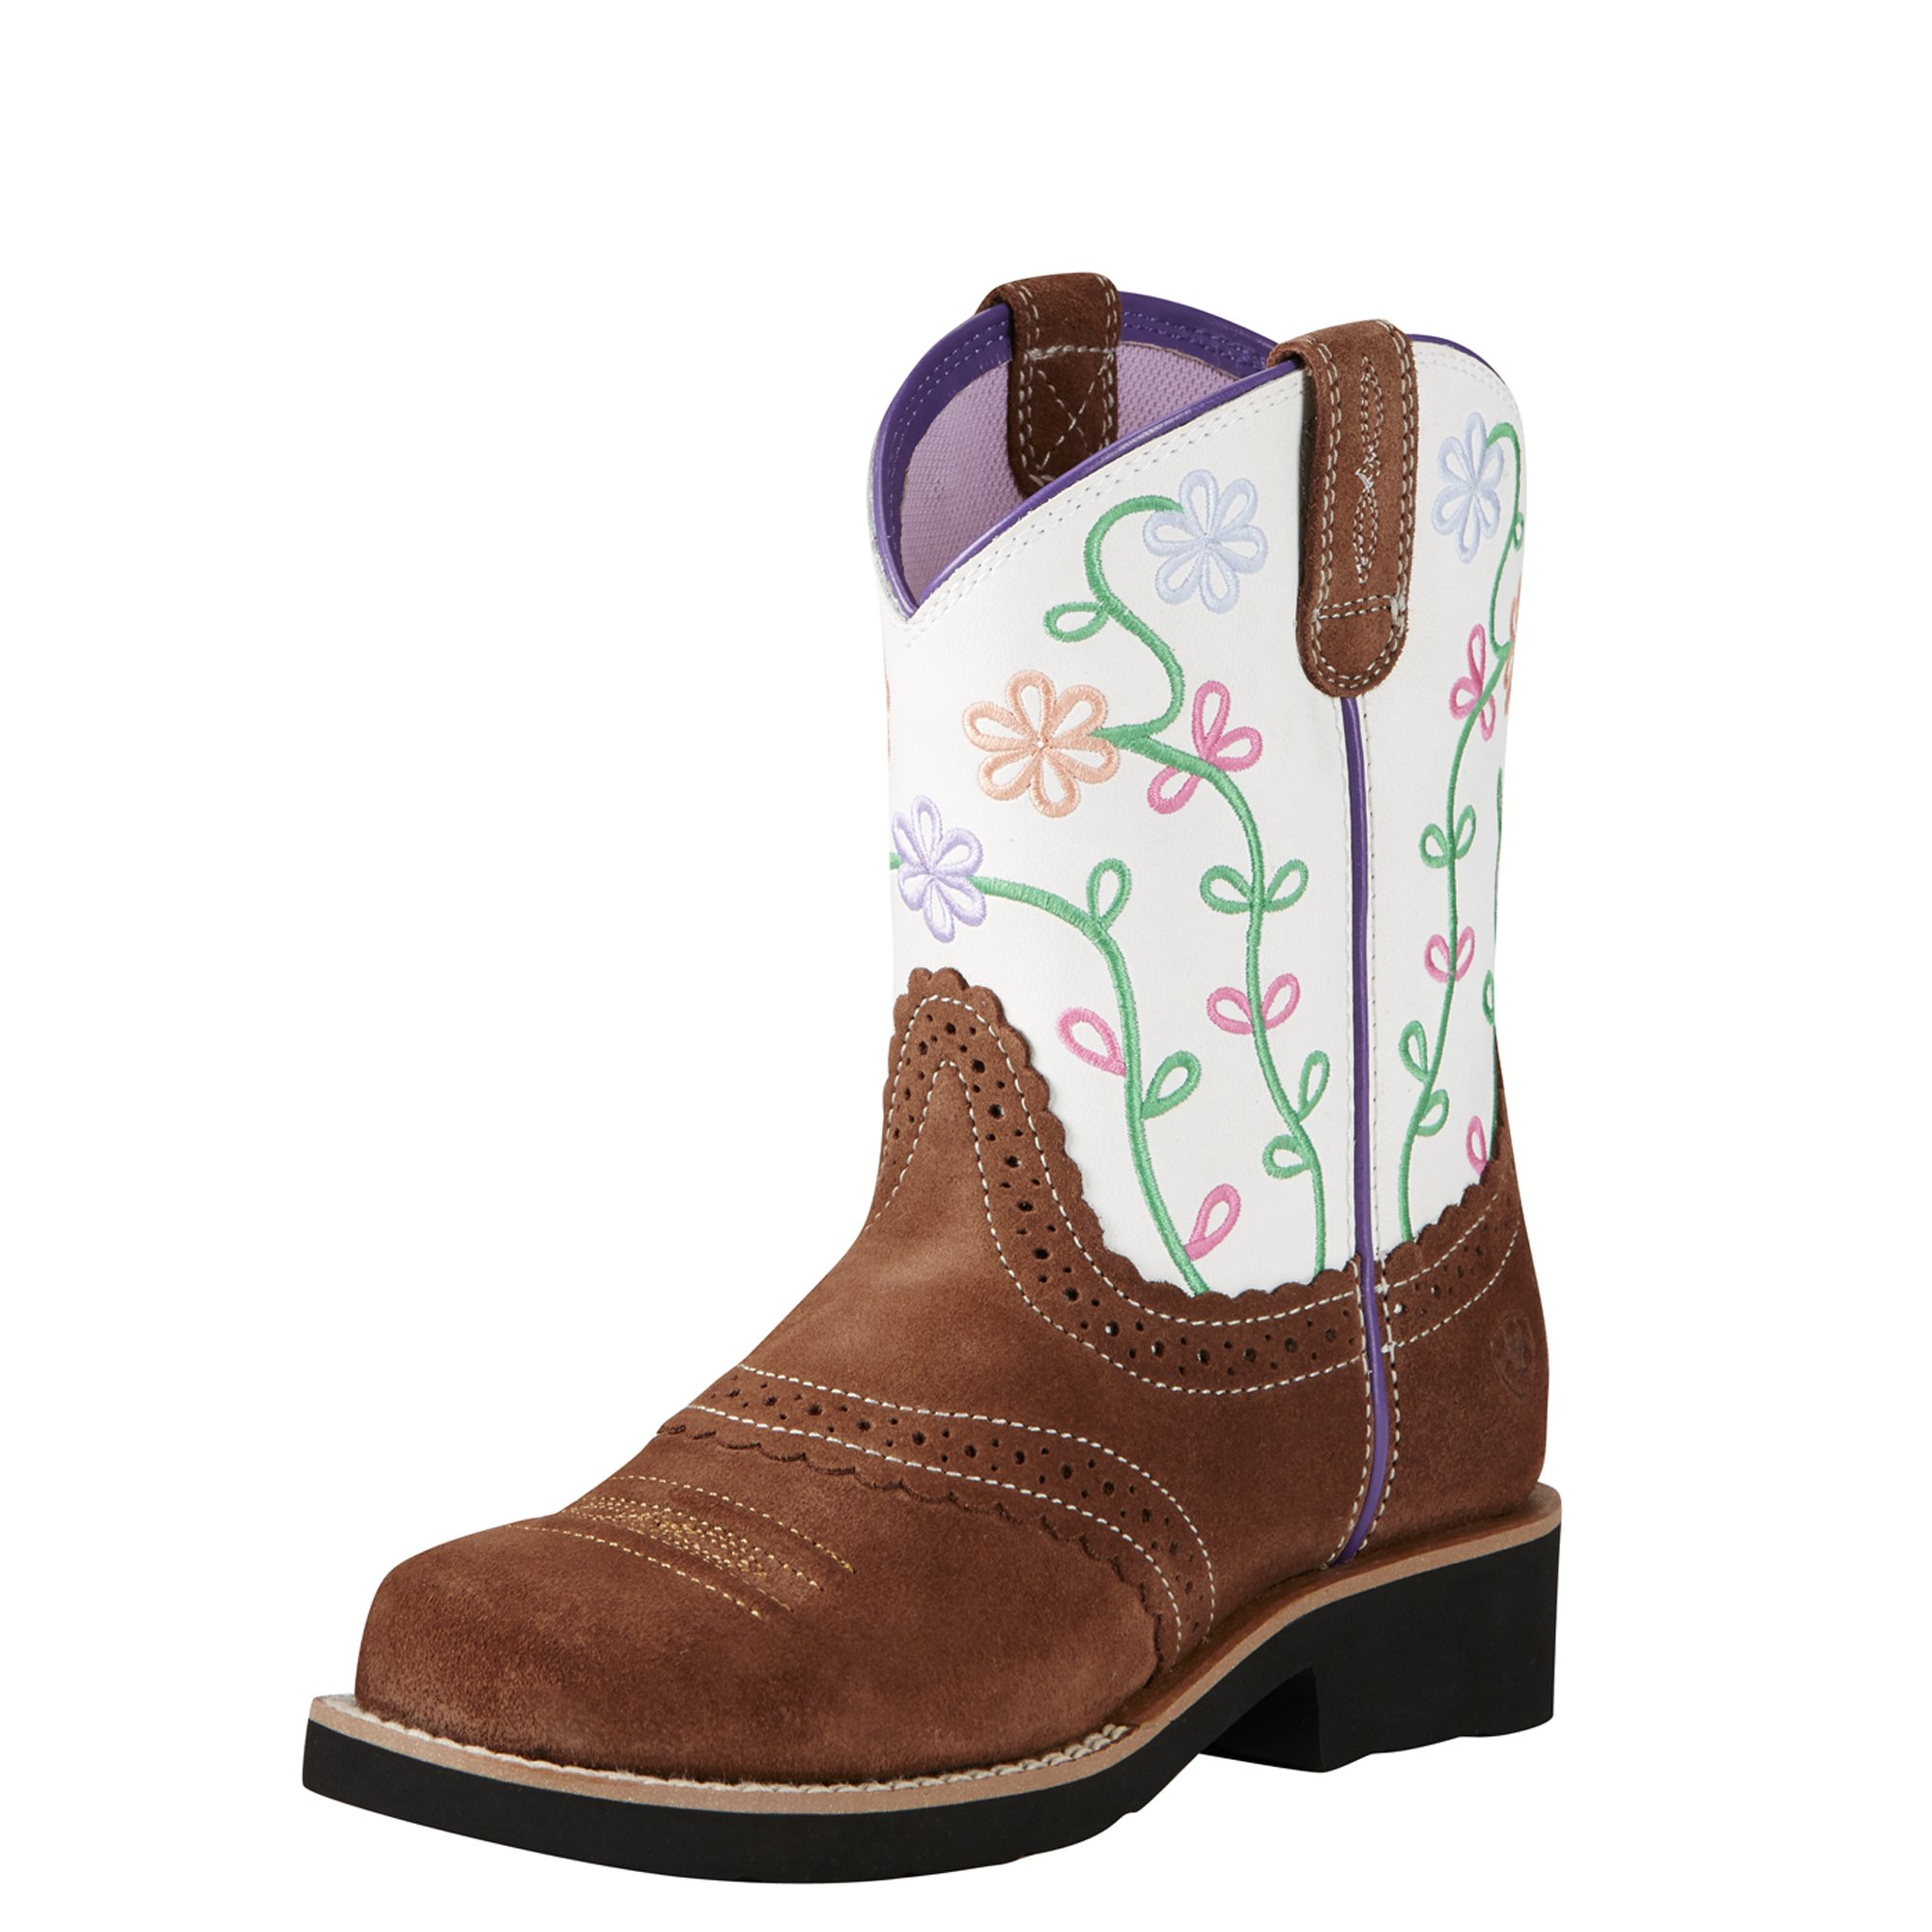 Ariat Kid/'s Fatbaby Blossom Boots 10019948